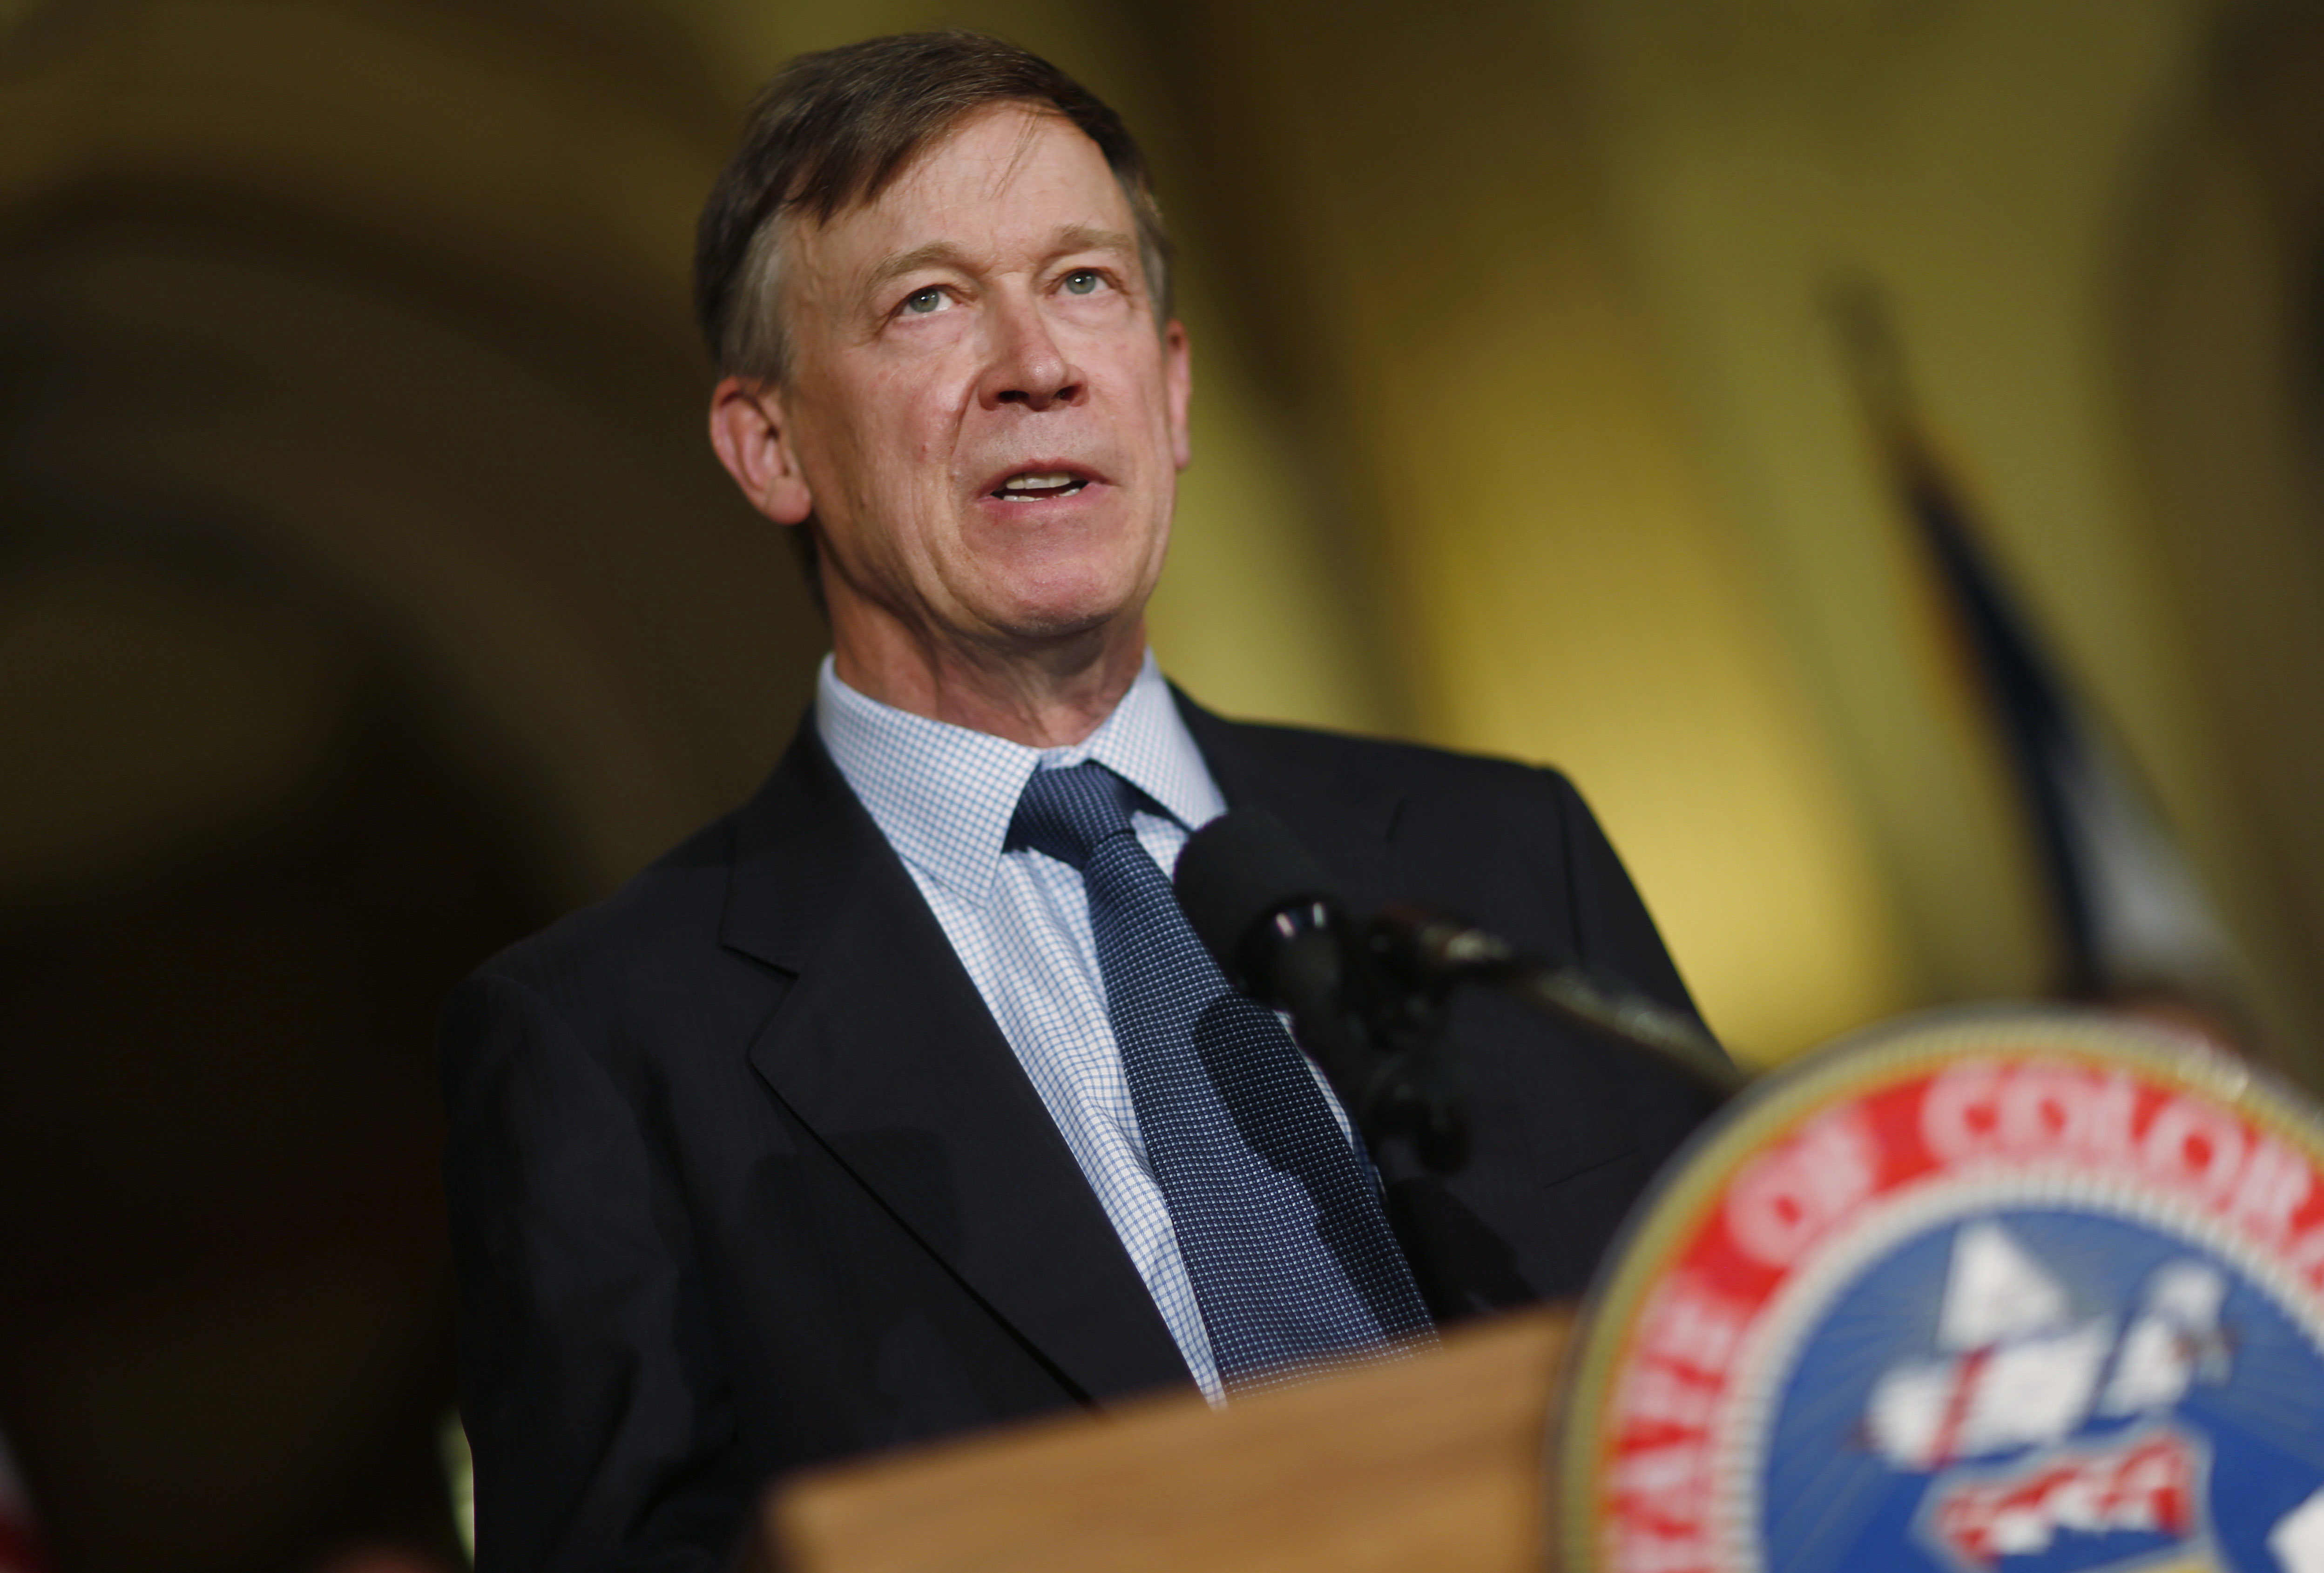 Photo: Gov. John Hickenlooper, June 2015 (AP Photo)